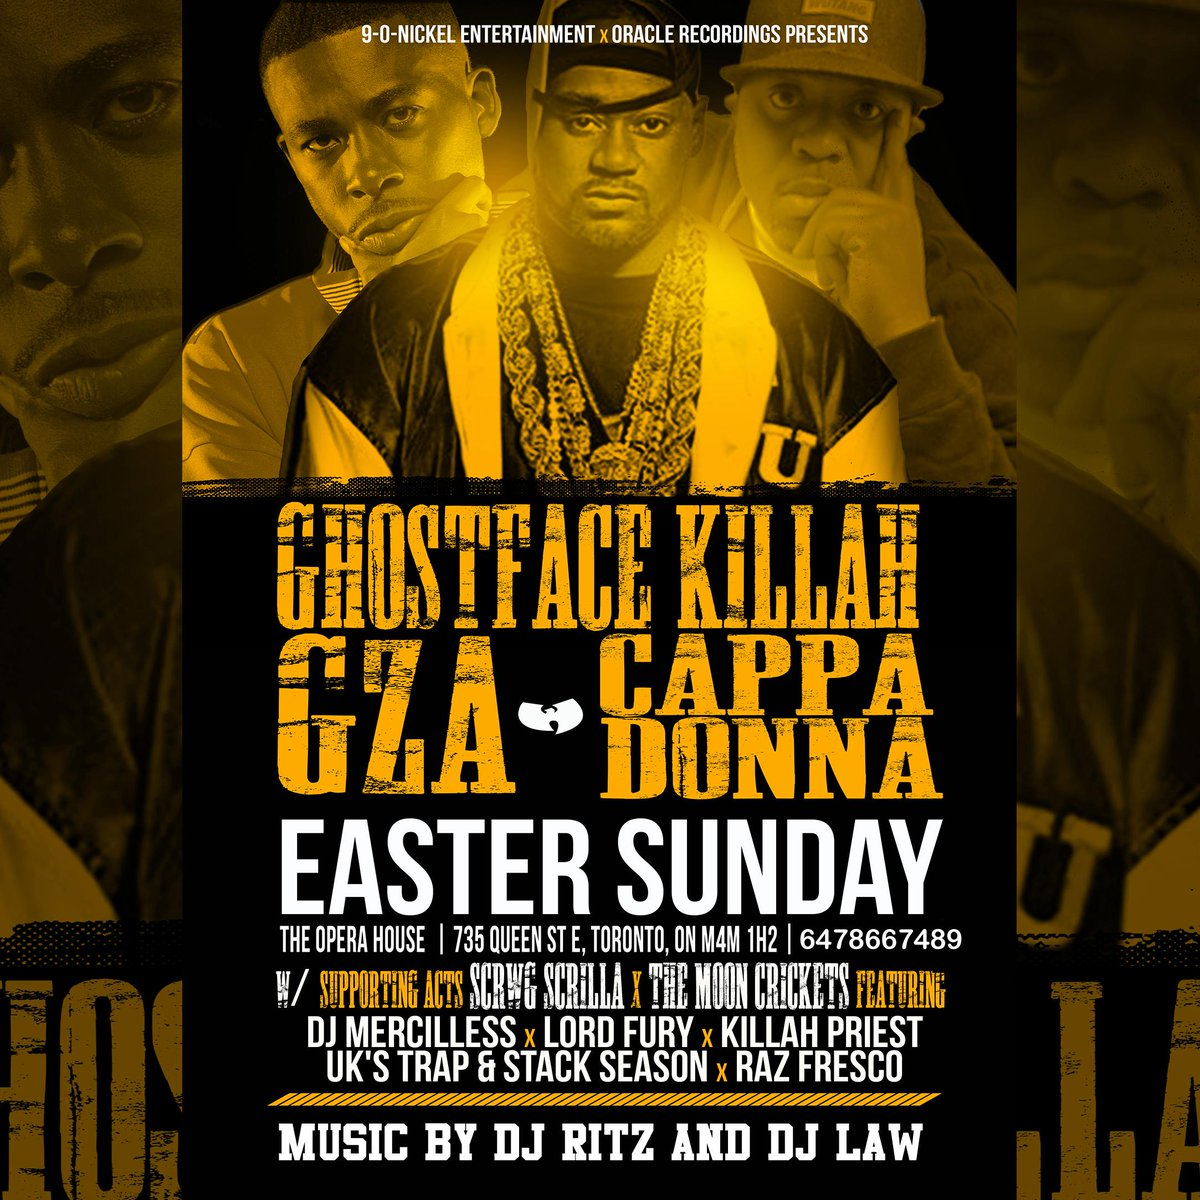 GHOSTFACE / GZA / CAPPADONNA LIVE EASTER SUNDAY INSIDE THE OPERA HOUSE HIT ME FOR TICKETS 6478667489 http://t.co/RXBni5OpCW